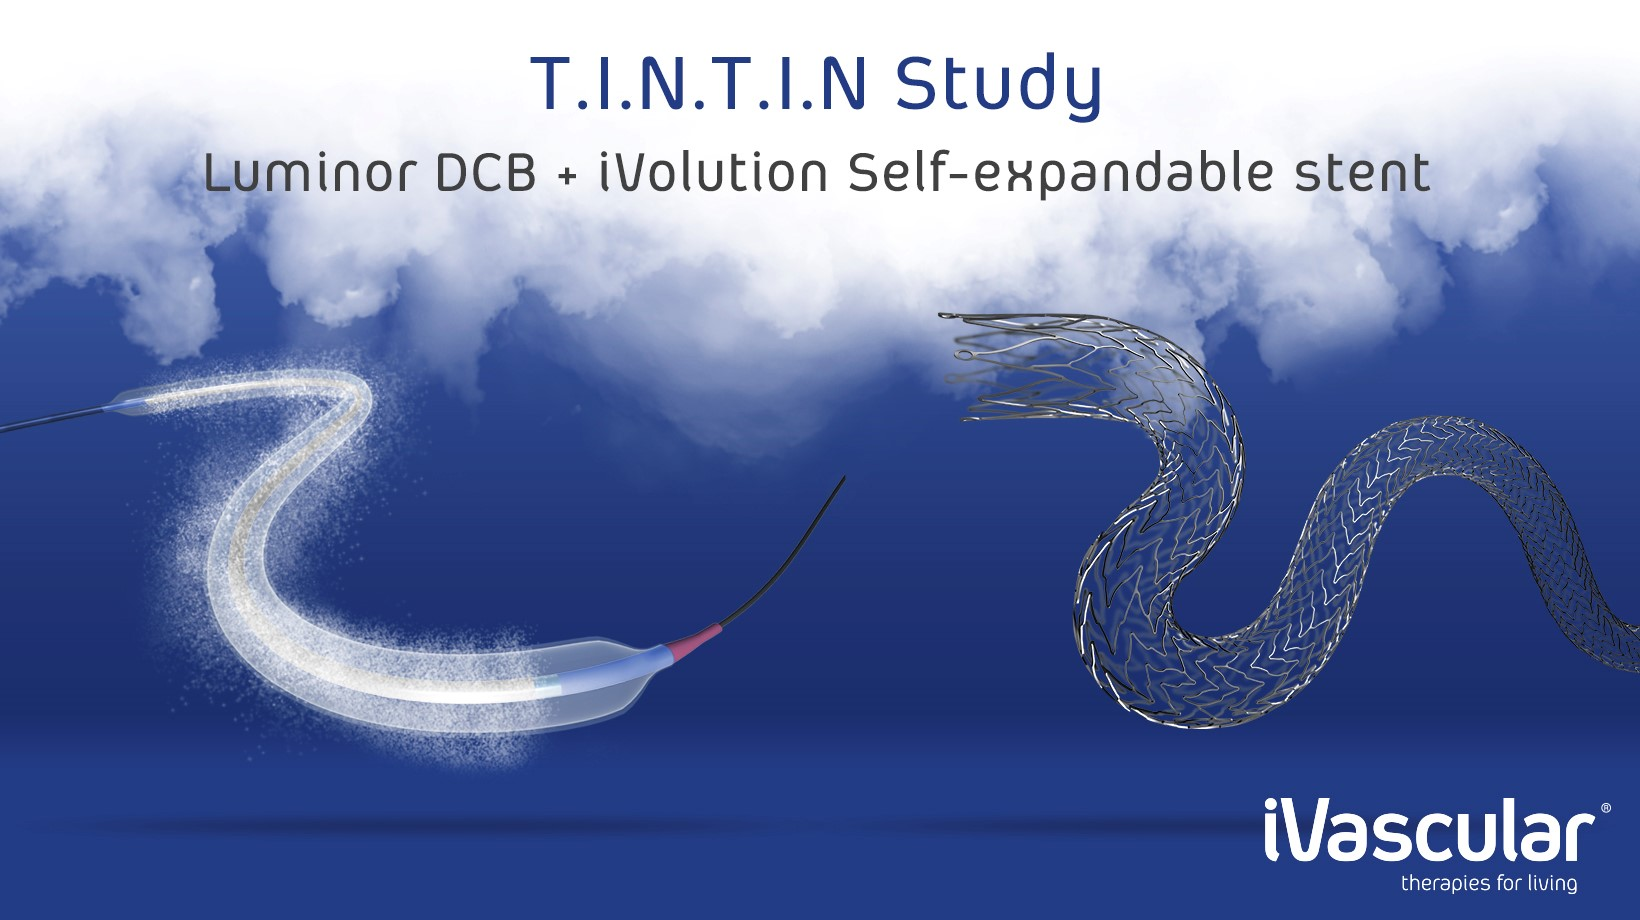 The T.I.N.T.I.N. trial evaluating the combined therapy of Luminor DCB and iVolution SX stent